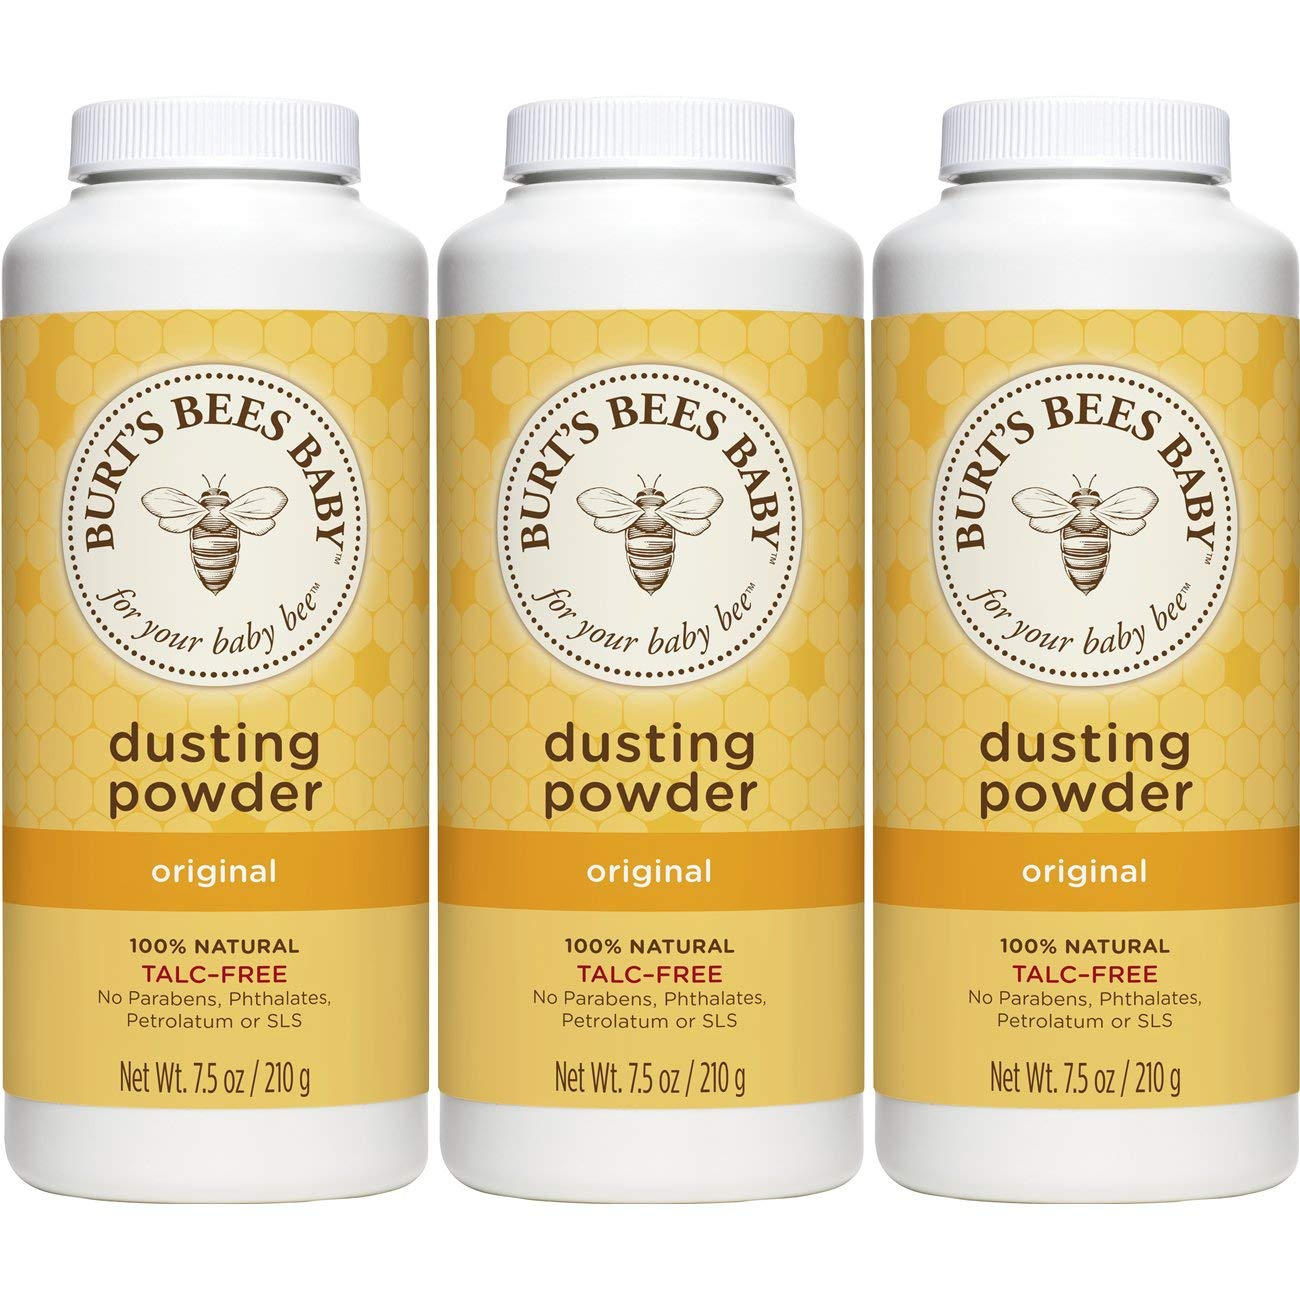 Burt's Bees Baby 100% Natural Dusting Powder, 7.5 Ounces (Pack of 3) (Packaging May Vary) Burt' s Bees